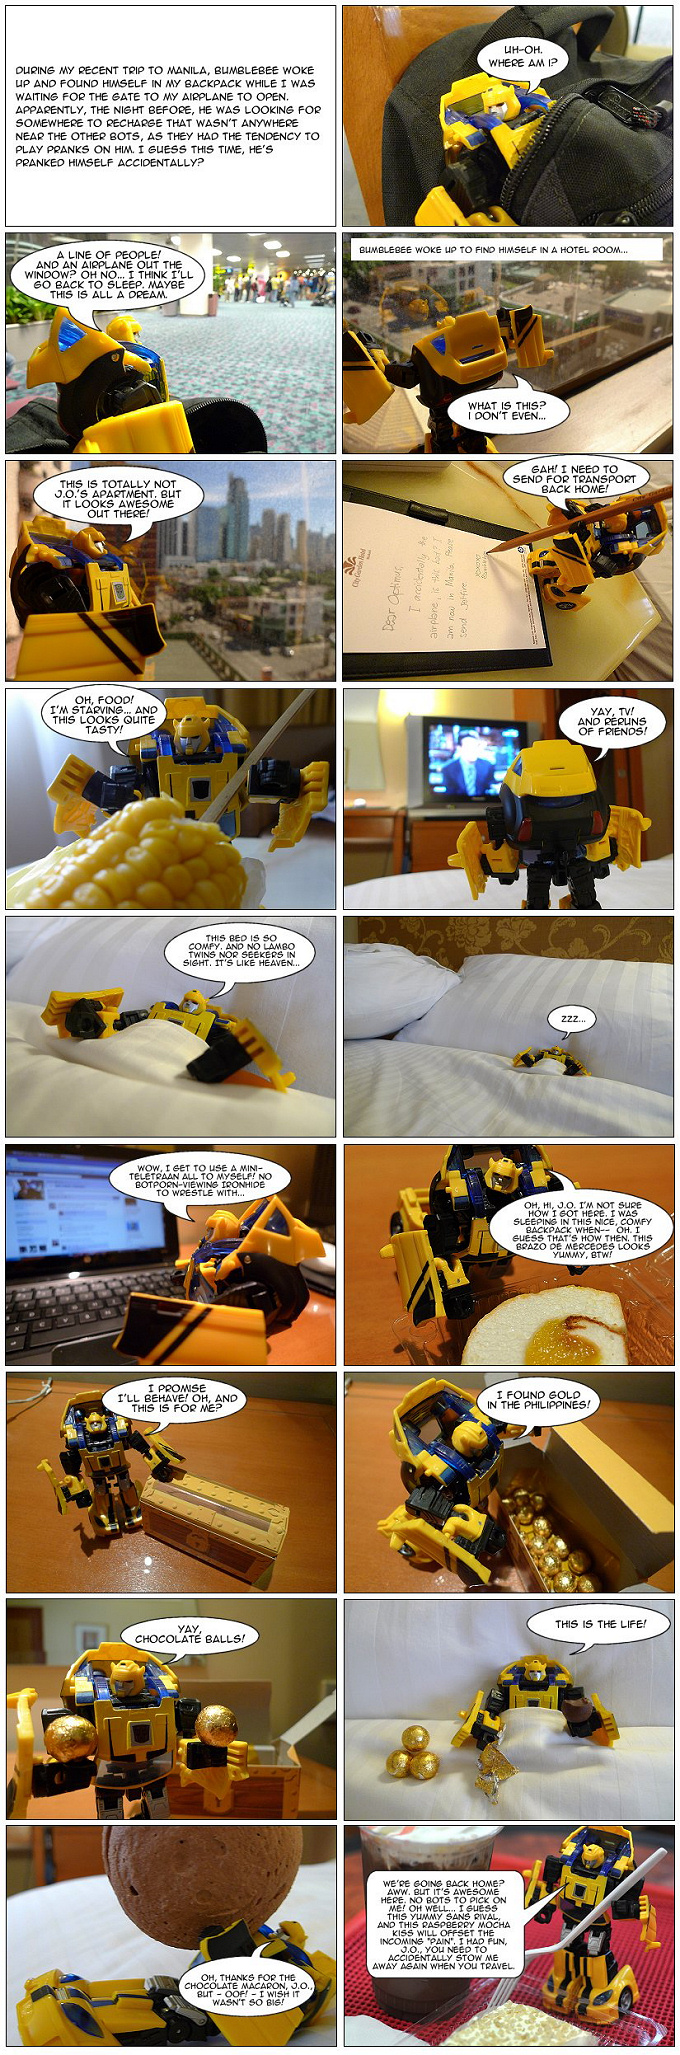 bumblebee's hotel room journal - my toys are alive 11 transformers fan comics